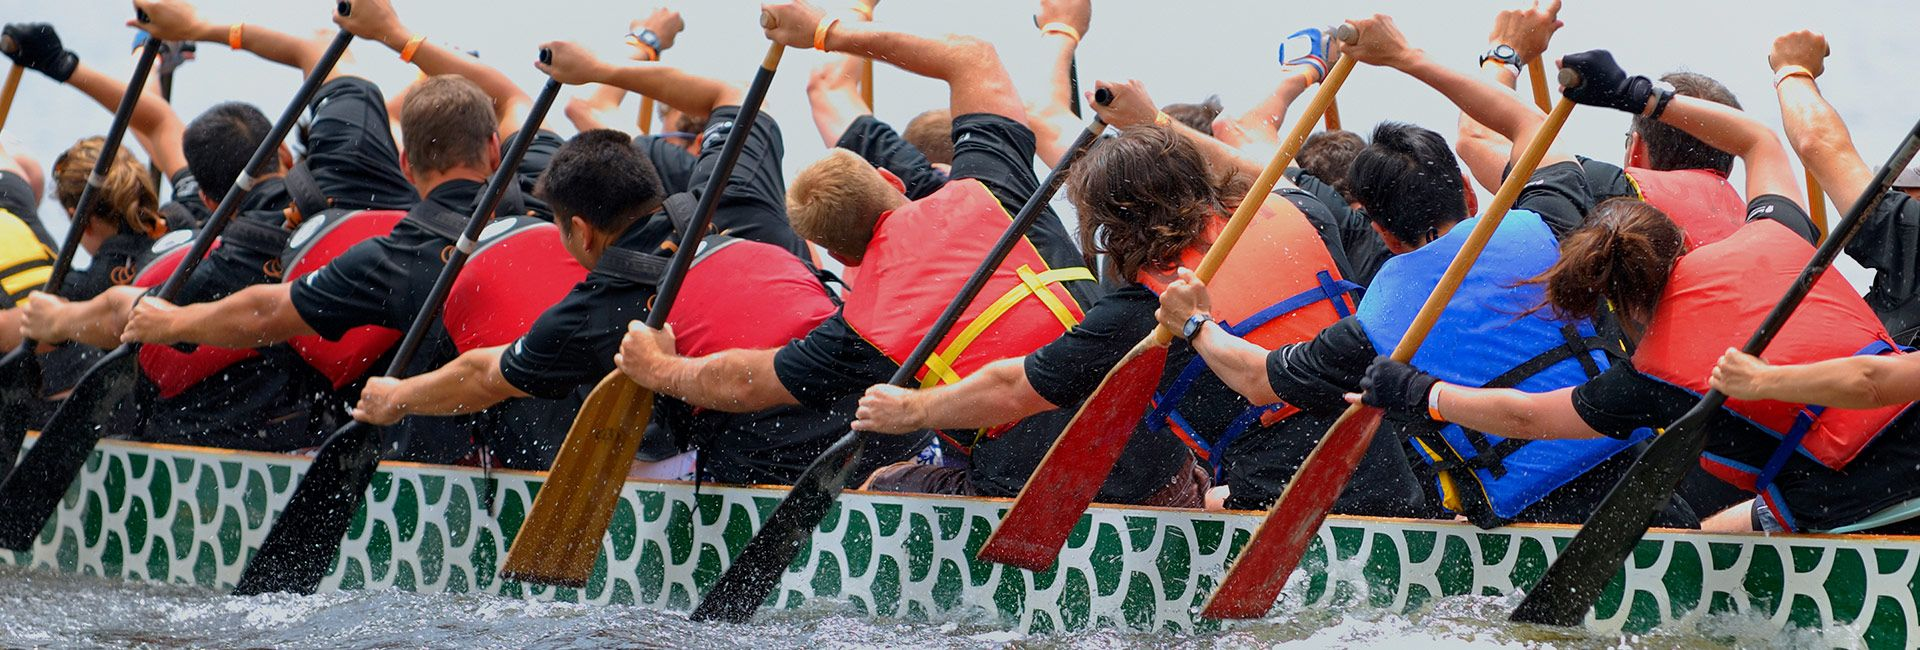 corporate dragon boat racing events